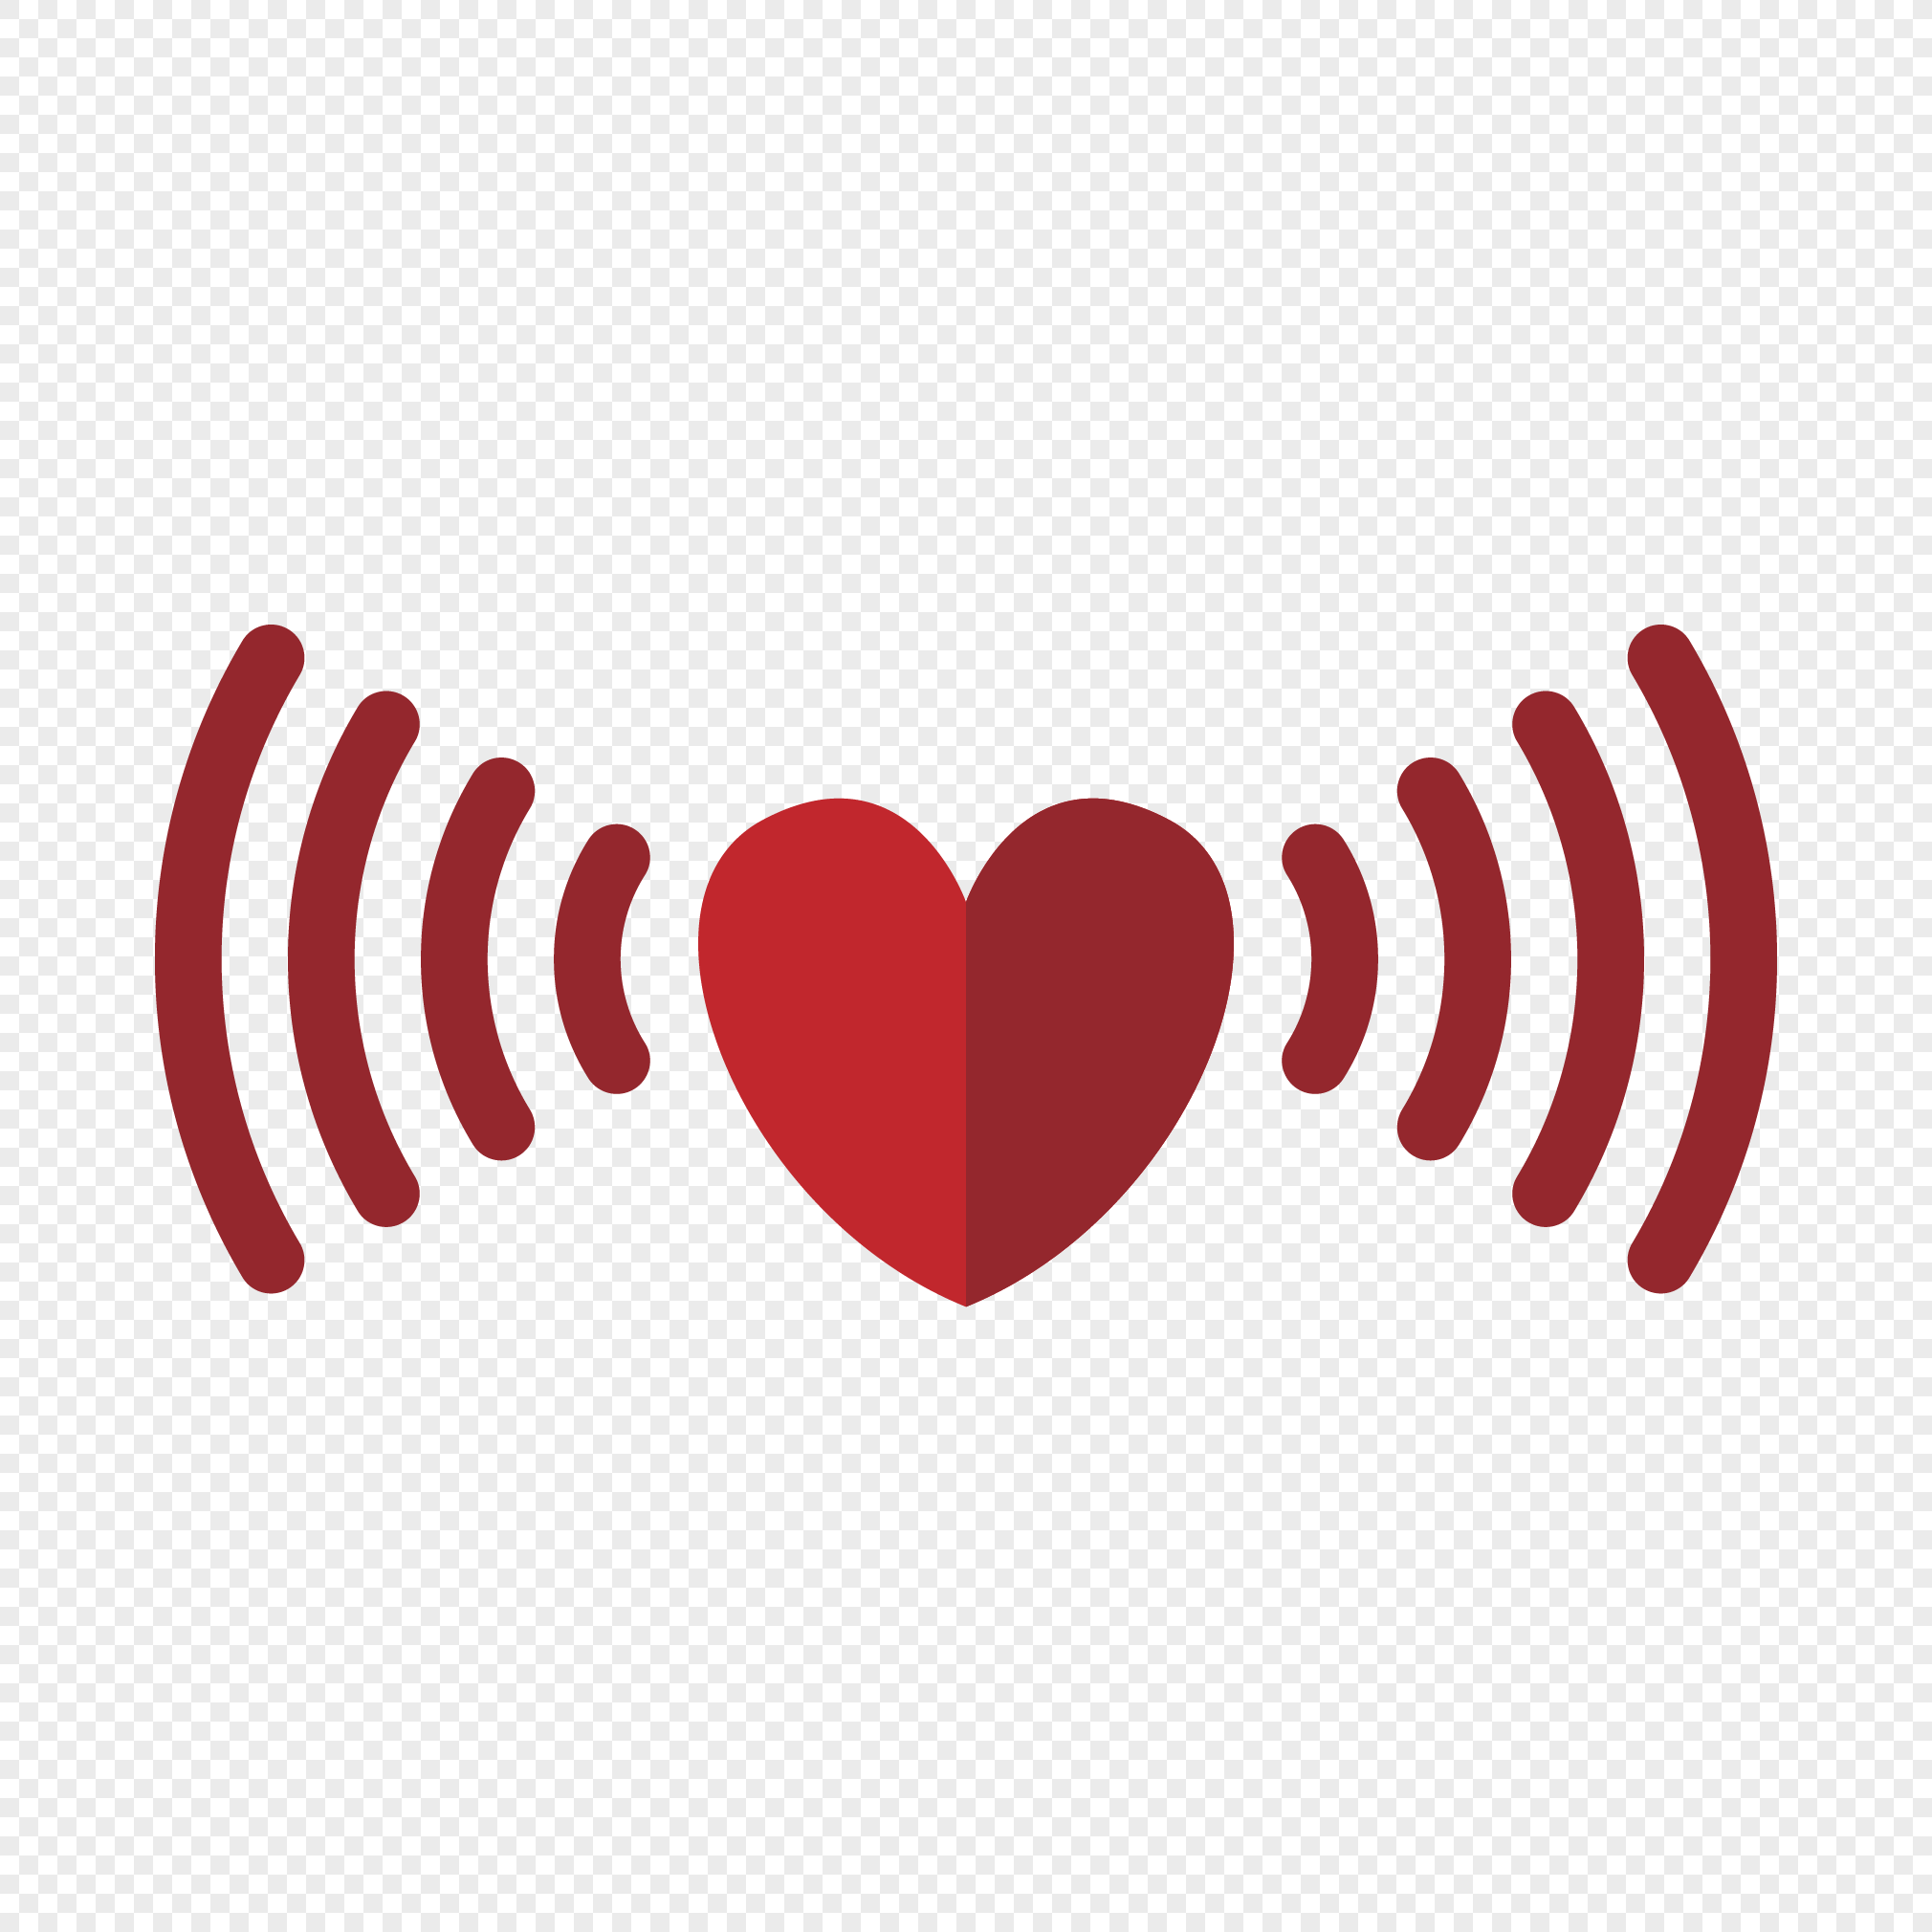 Loving Heart Communication Graphics Imagepicture Free Download